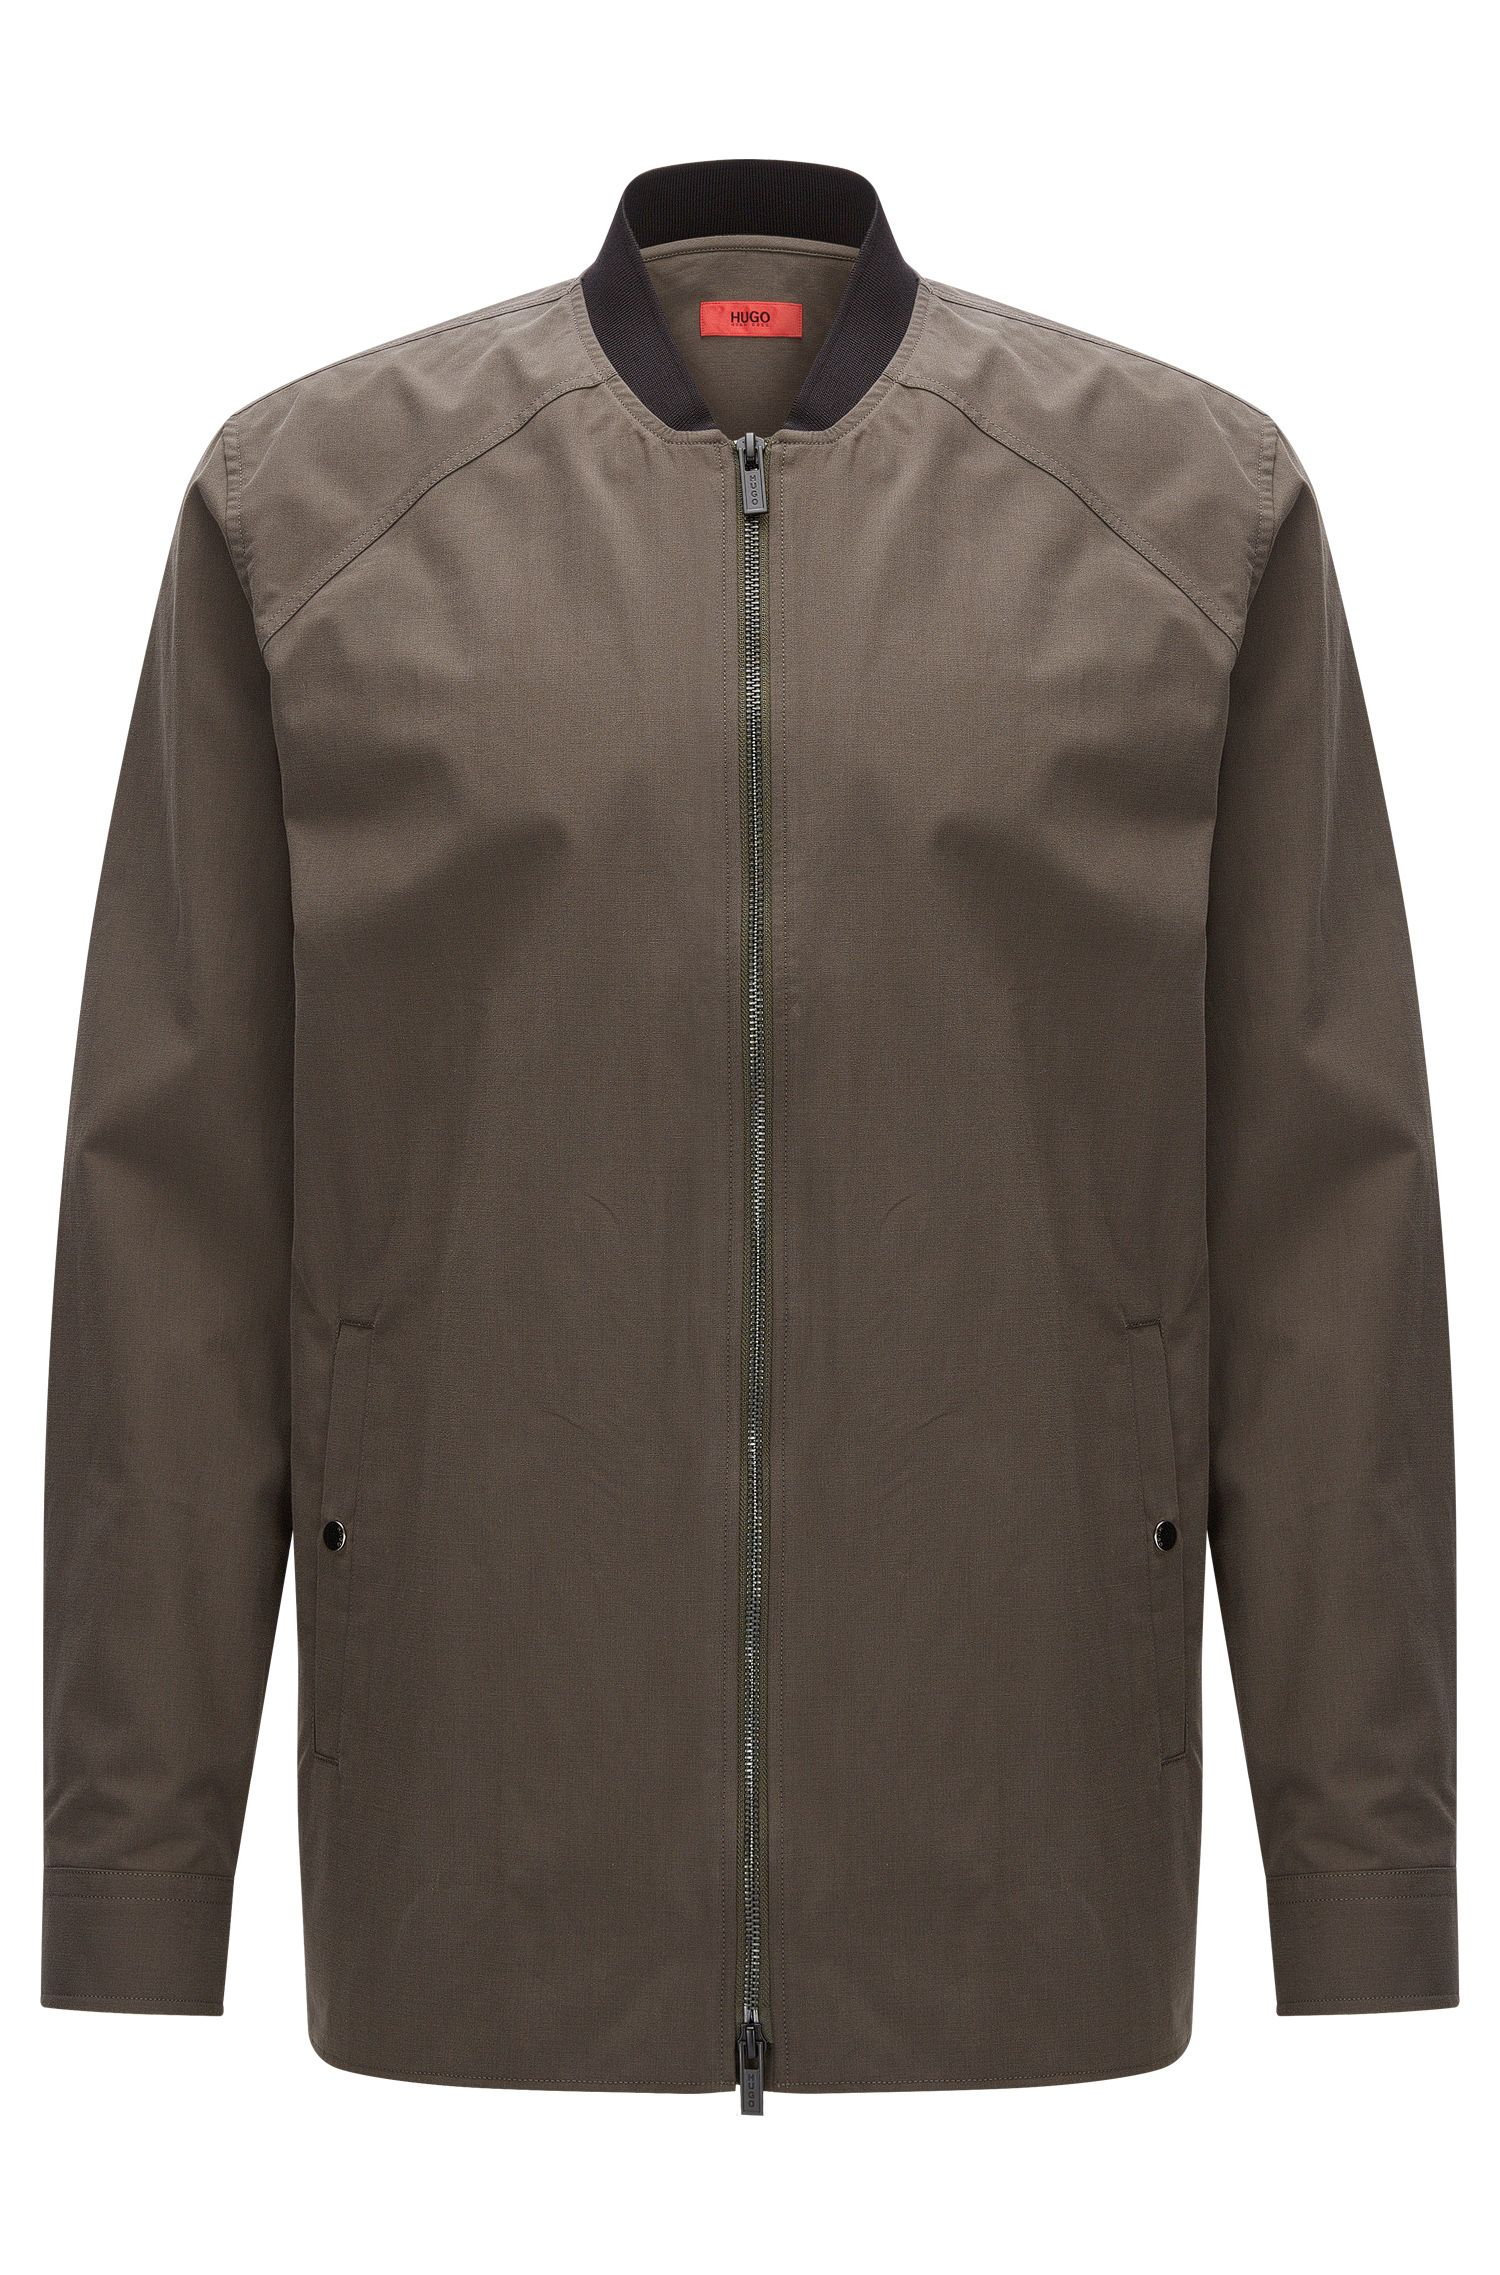 Relaxed-fit shirt jacket in mid-weight cotton